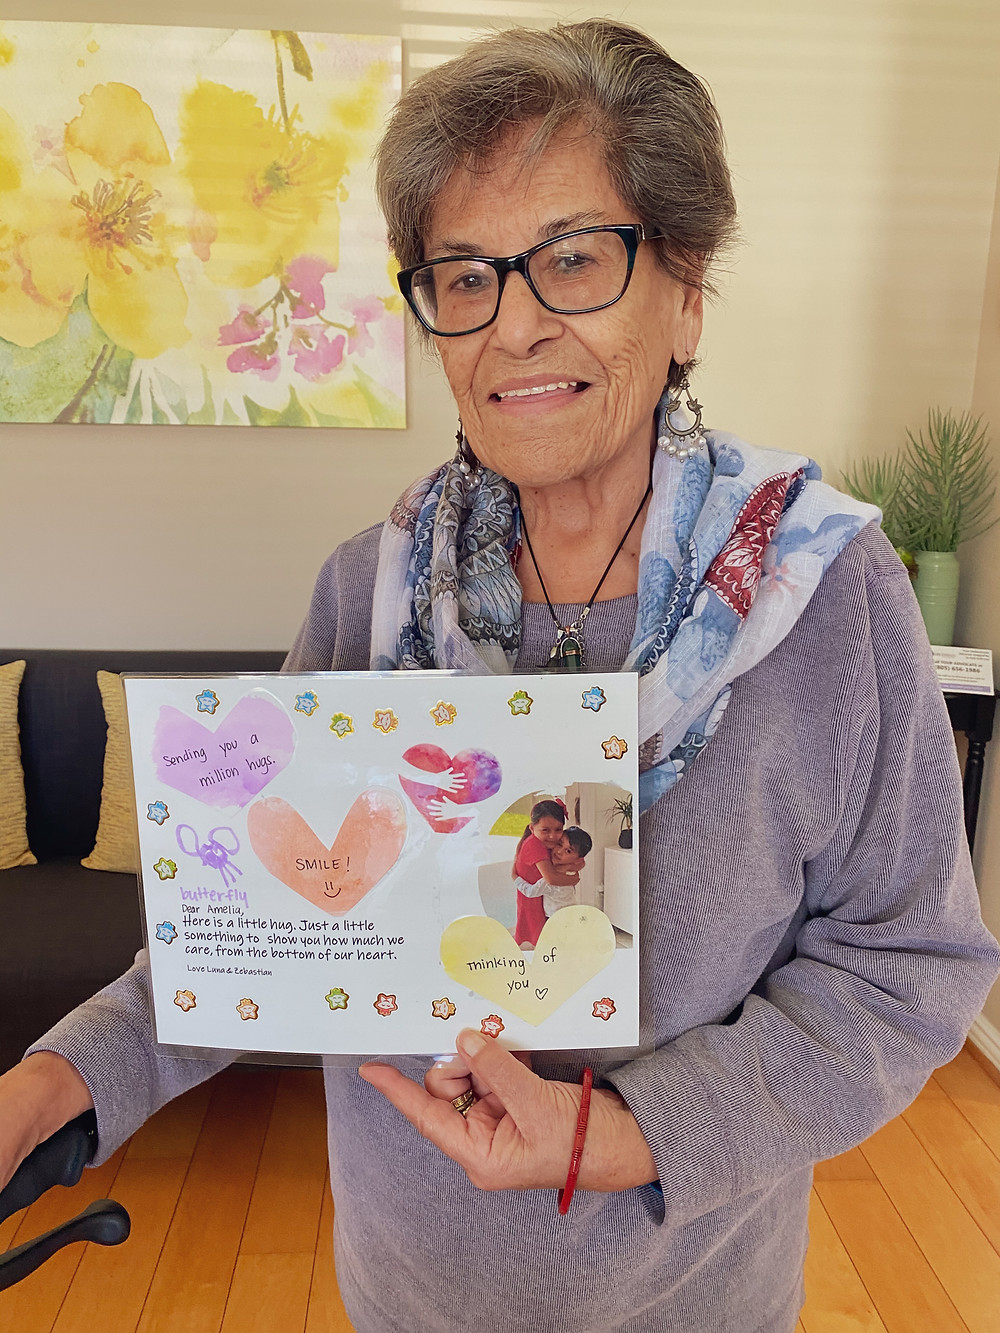 Elderly resident sharing a heartwarming card she received.